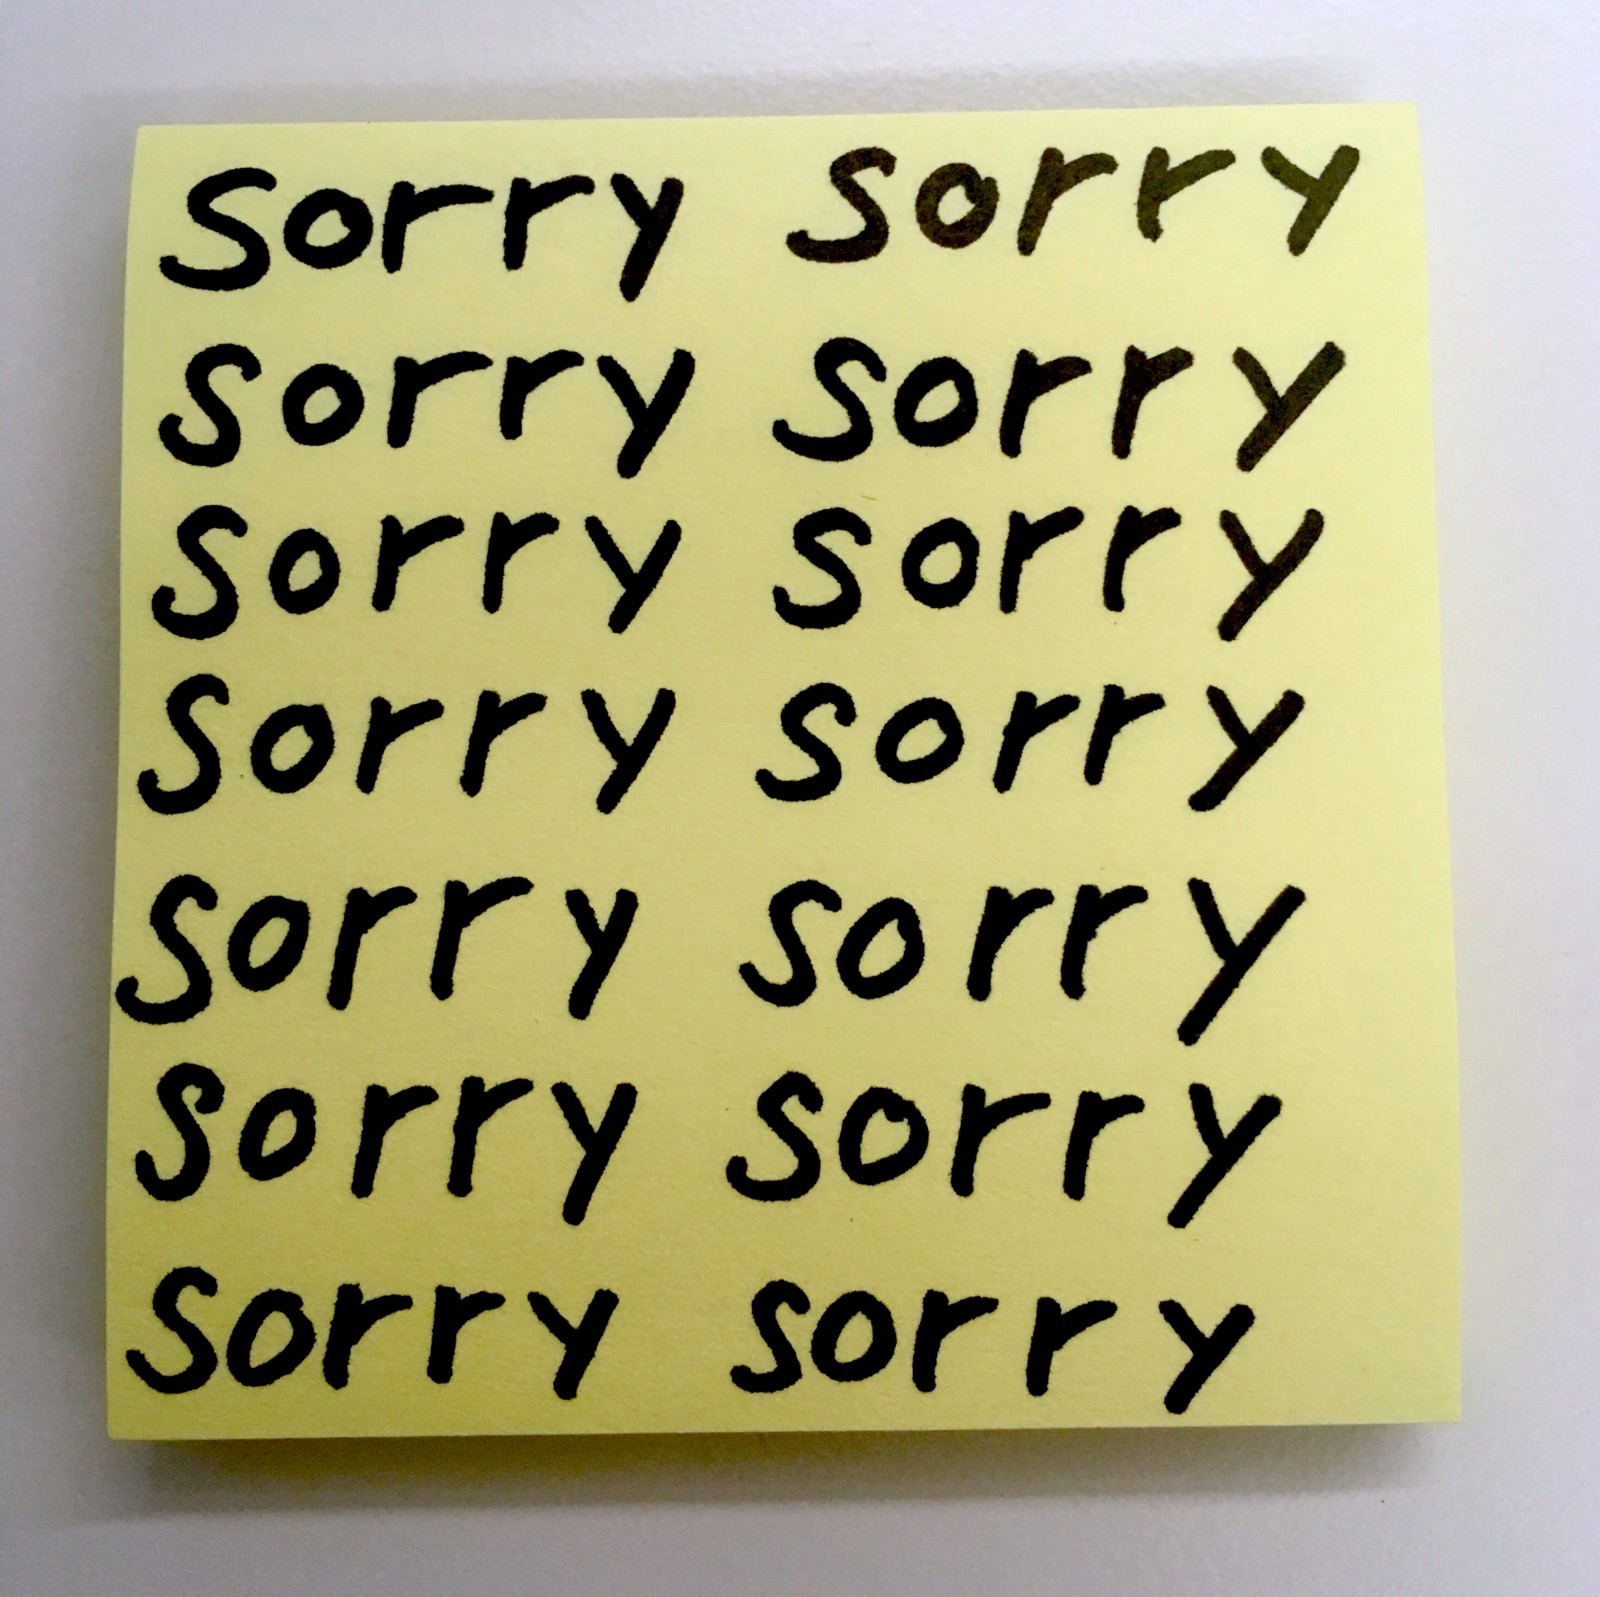 Have You Ever Been Sorry To Hear From A Friend You Were Glad To Hear From advise